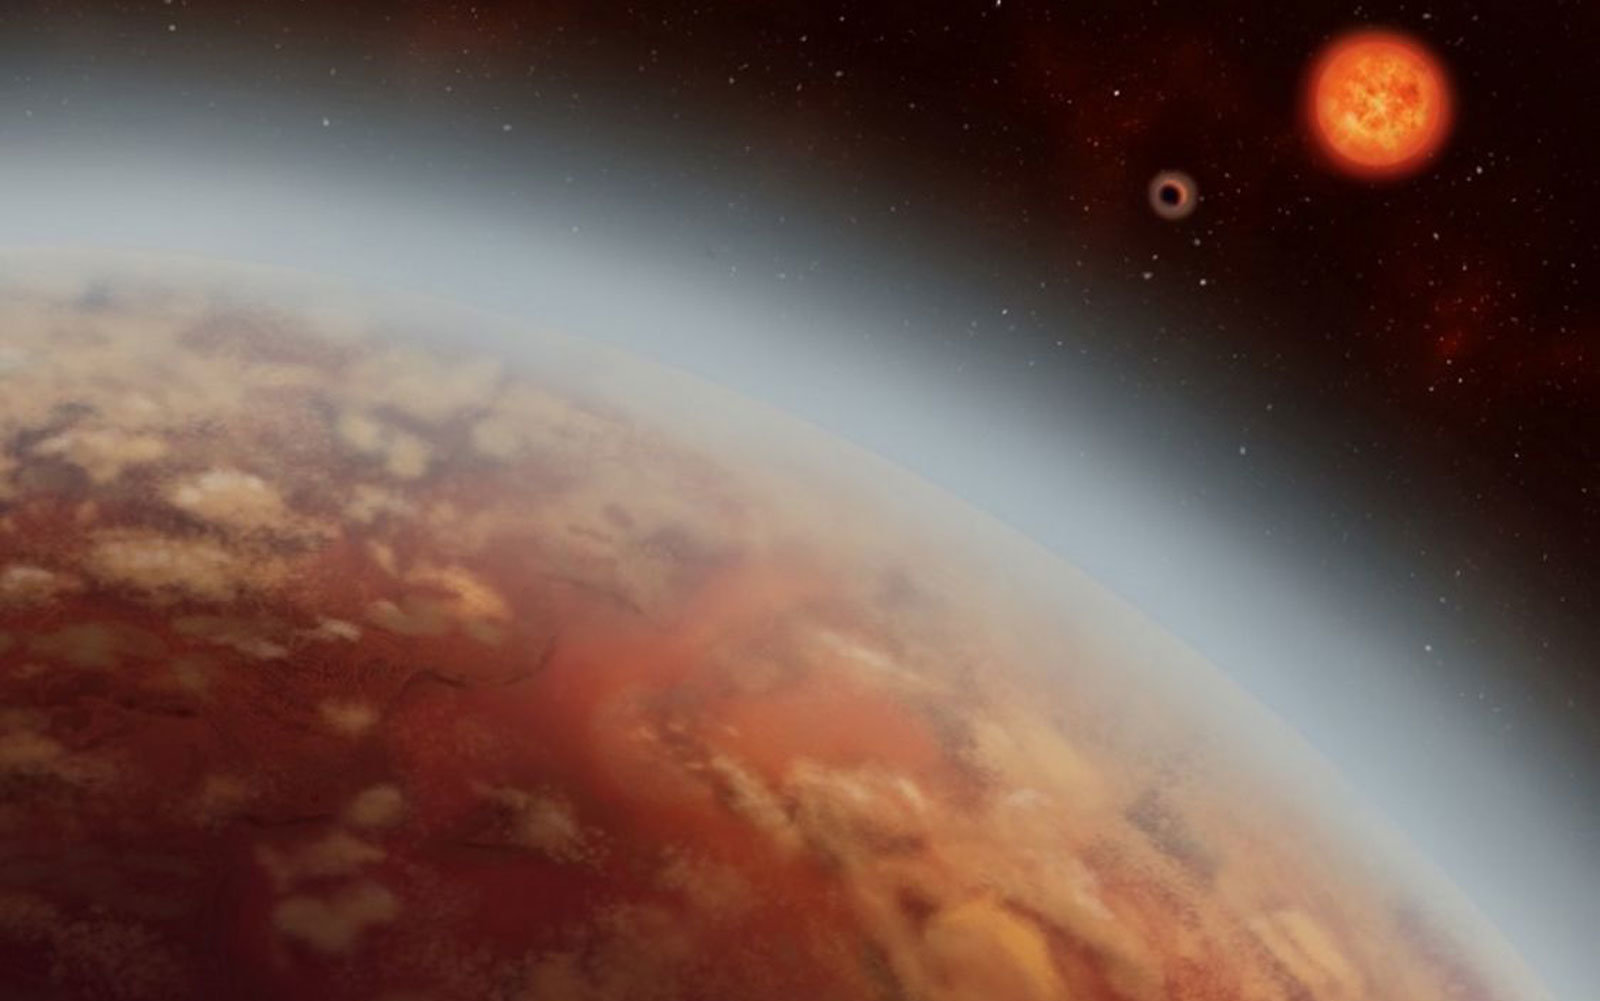 Canadian astronomers find 'super-Earth' with potential for extraterrestrial life